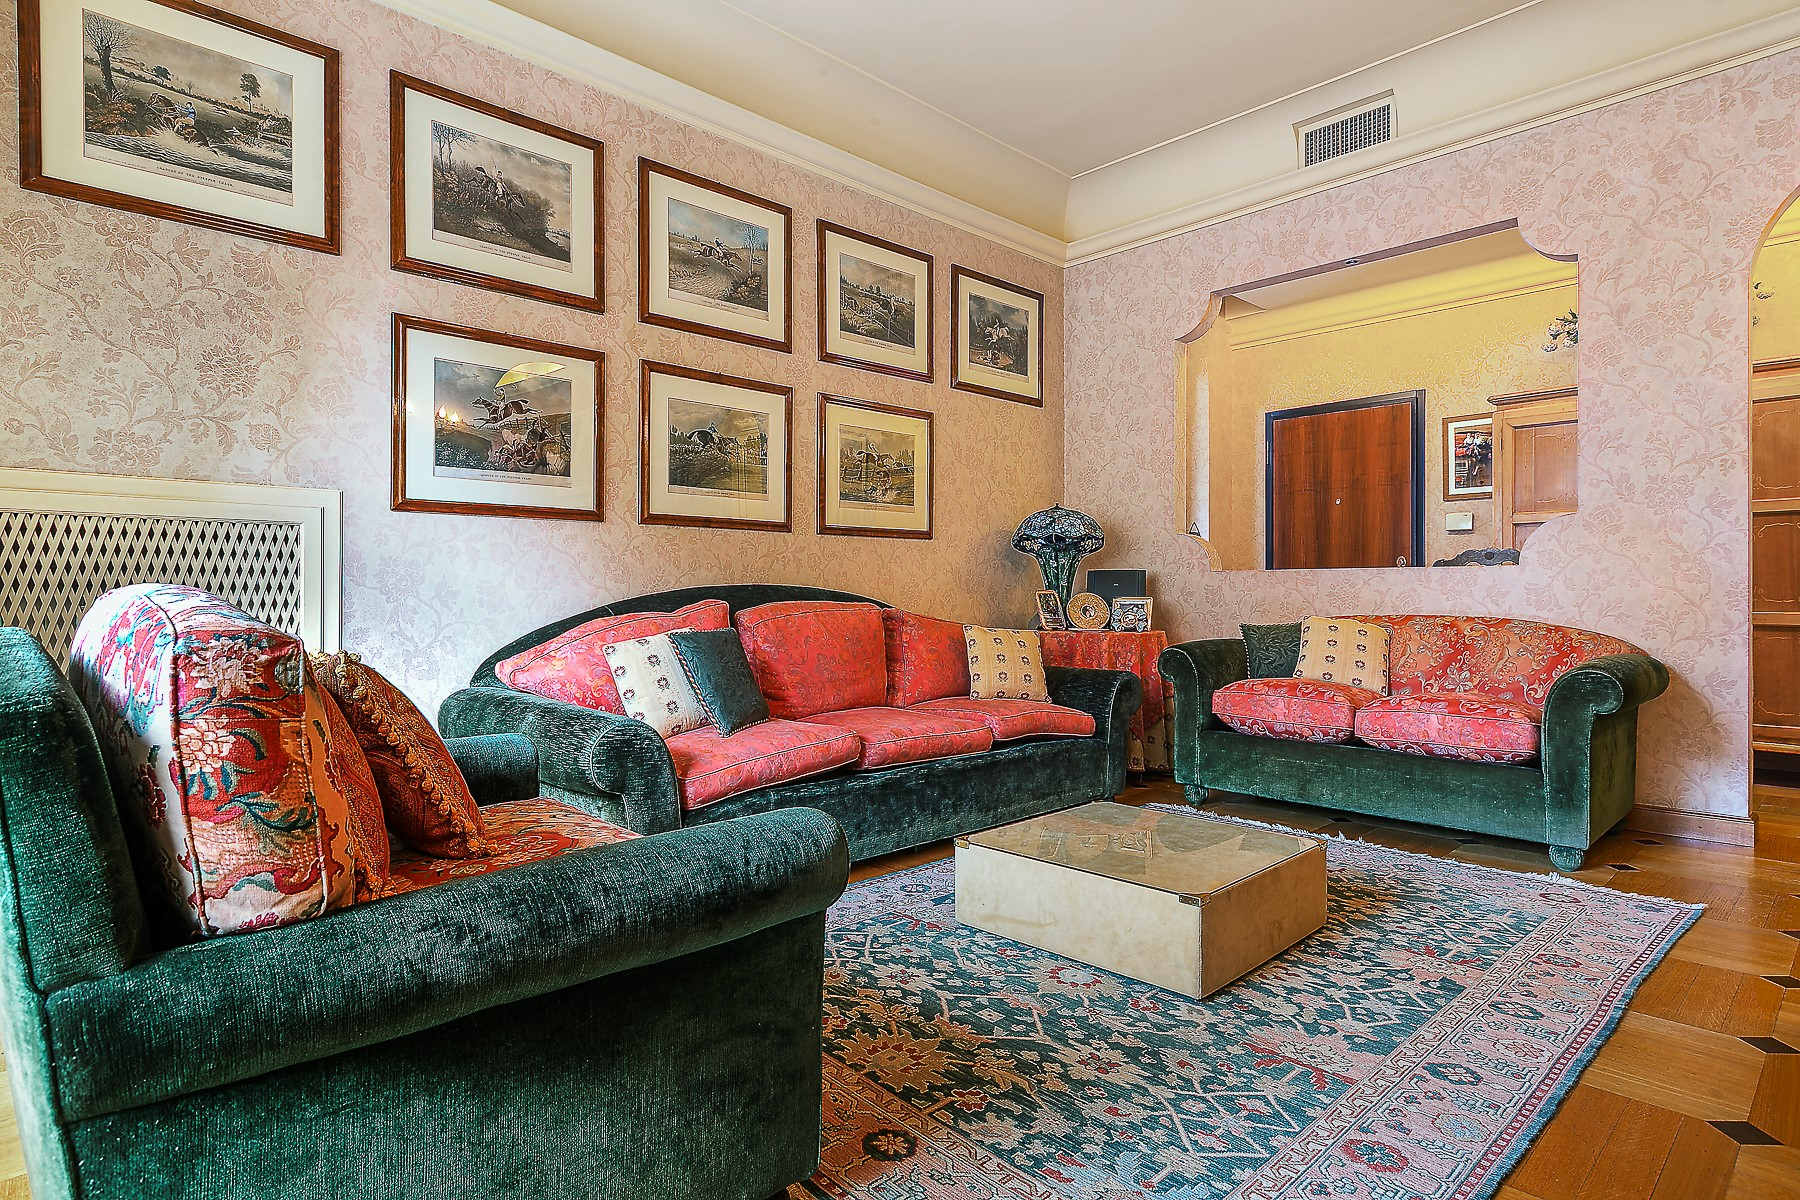 Additional photo for property listing at Classic style 3 bedroom apartment close to Sant' Ambrogio Via San Vincenzo Milano, Milan 20100 Italia